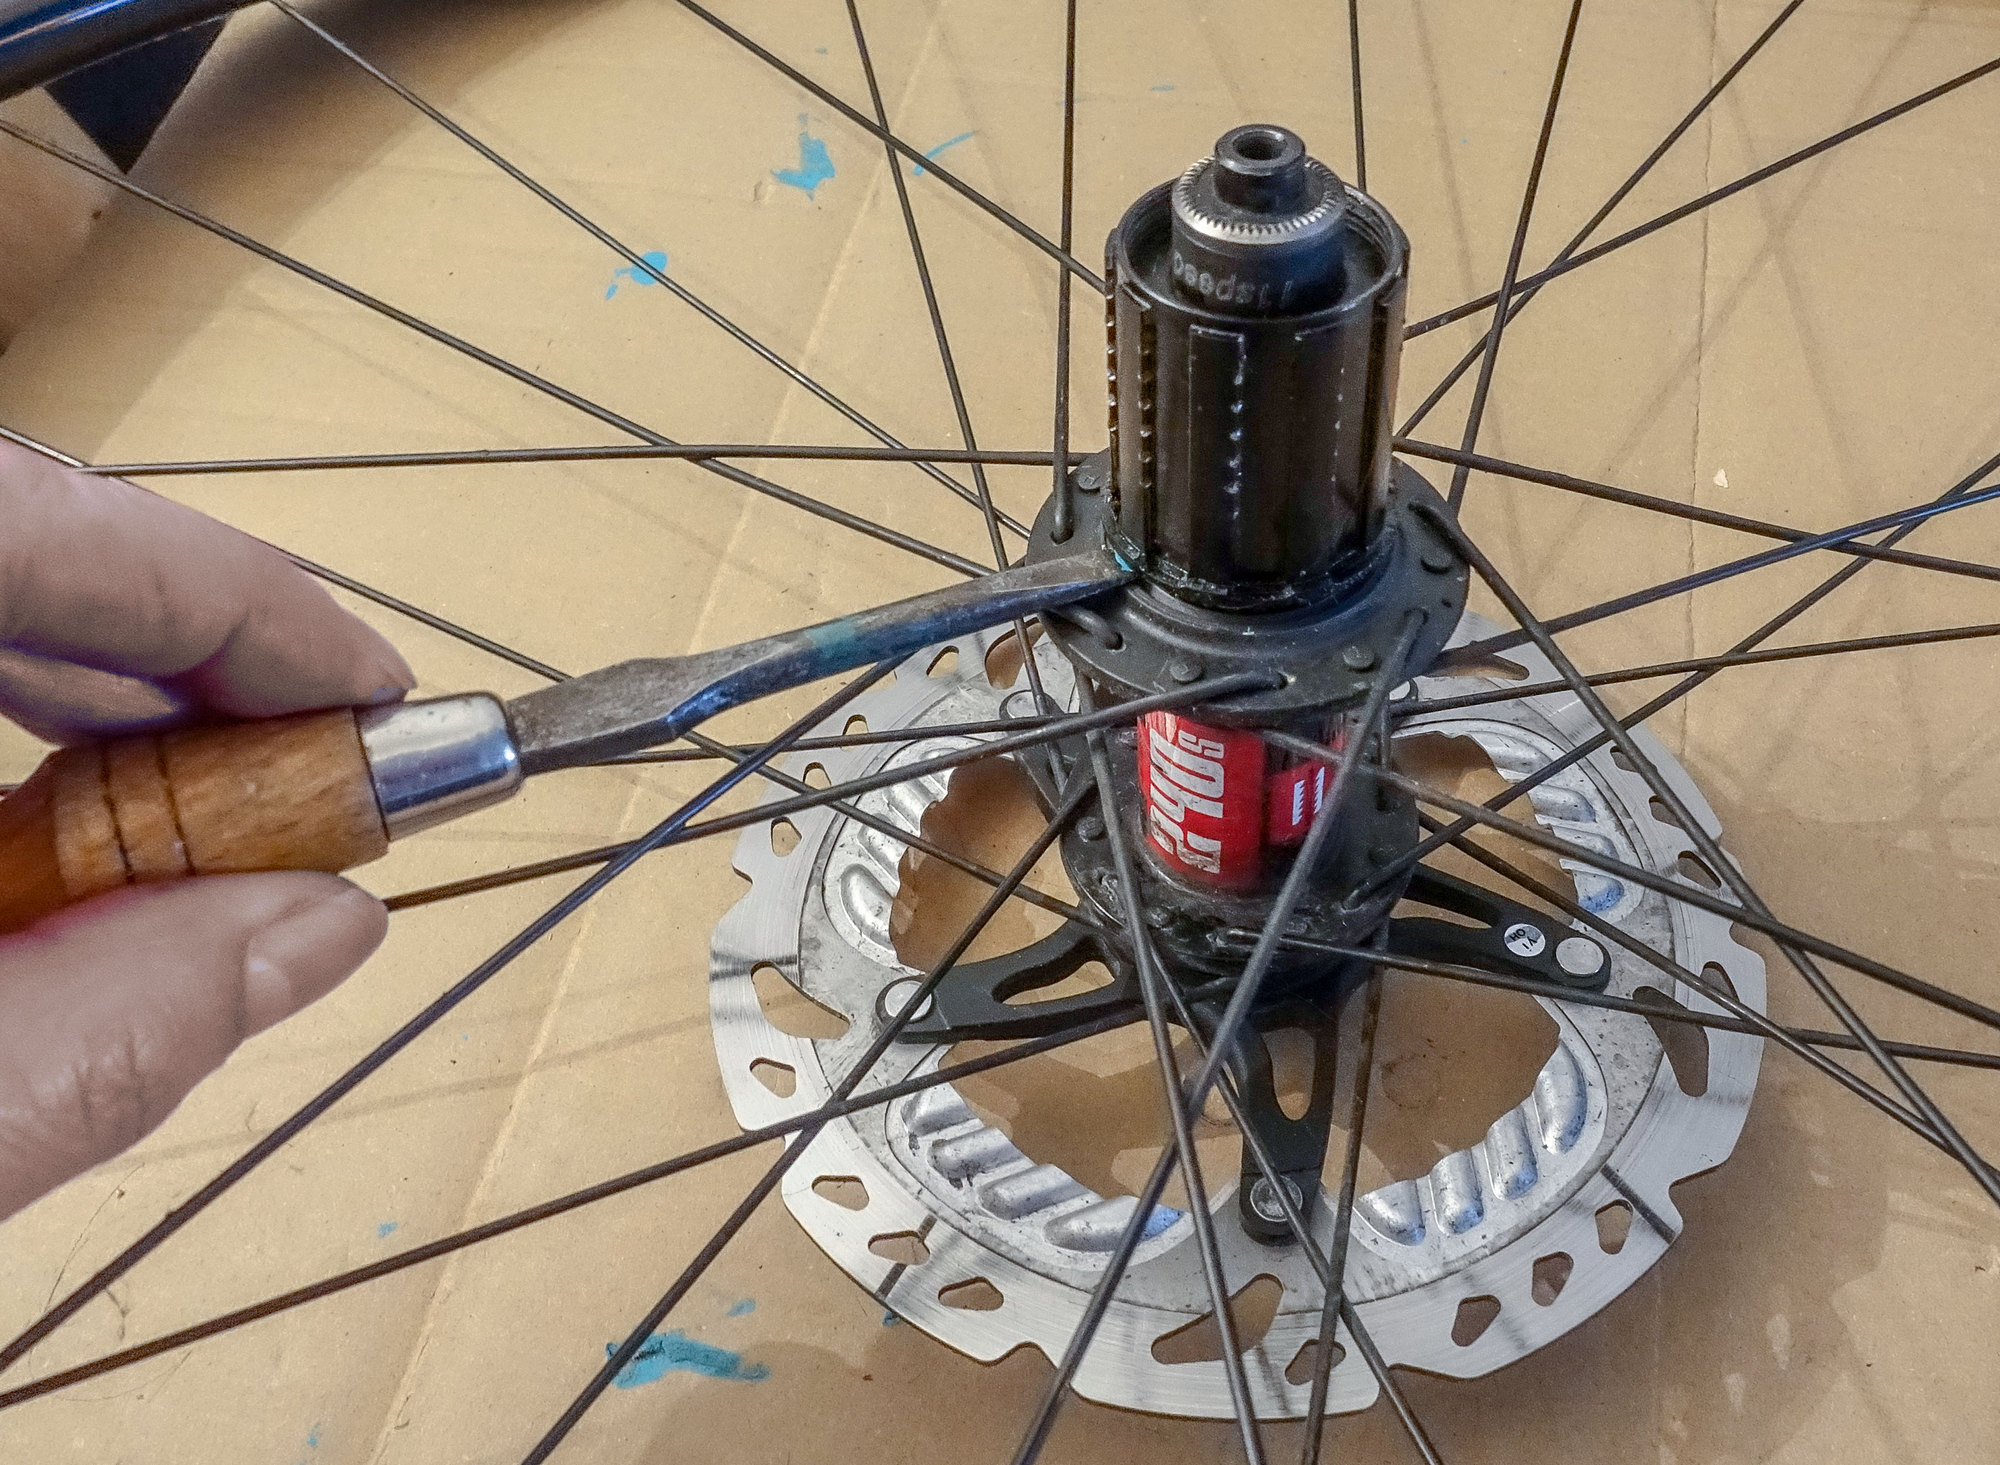 Removing DT Swiss freehub